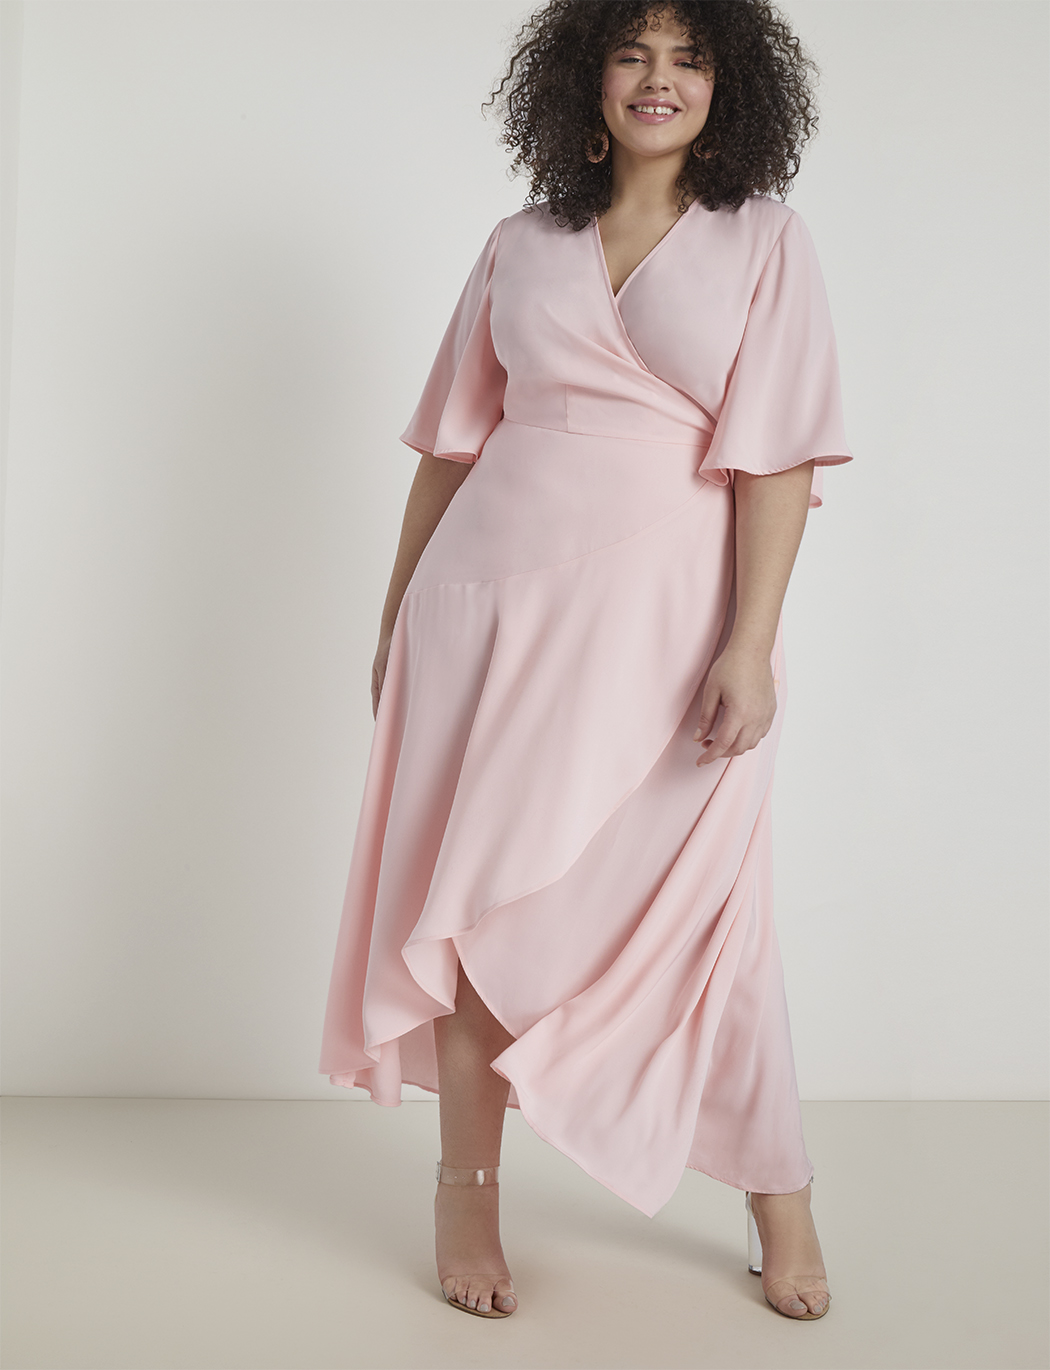 Flare Sleeve Maxi Wrap Dress | Women\'s Plus Size Dresses | ELOQUII